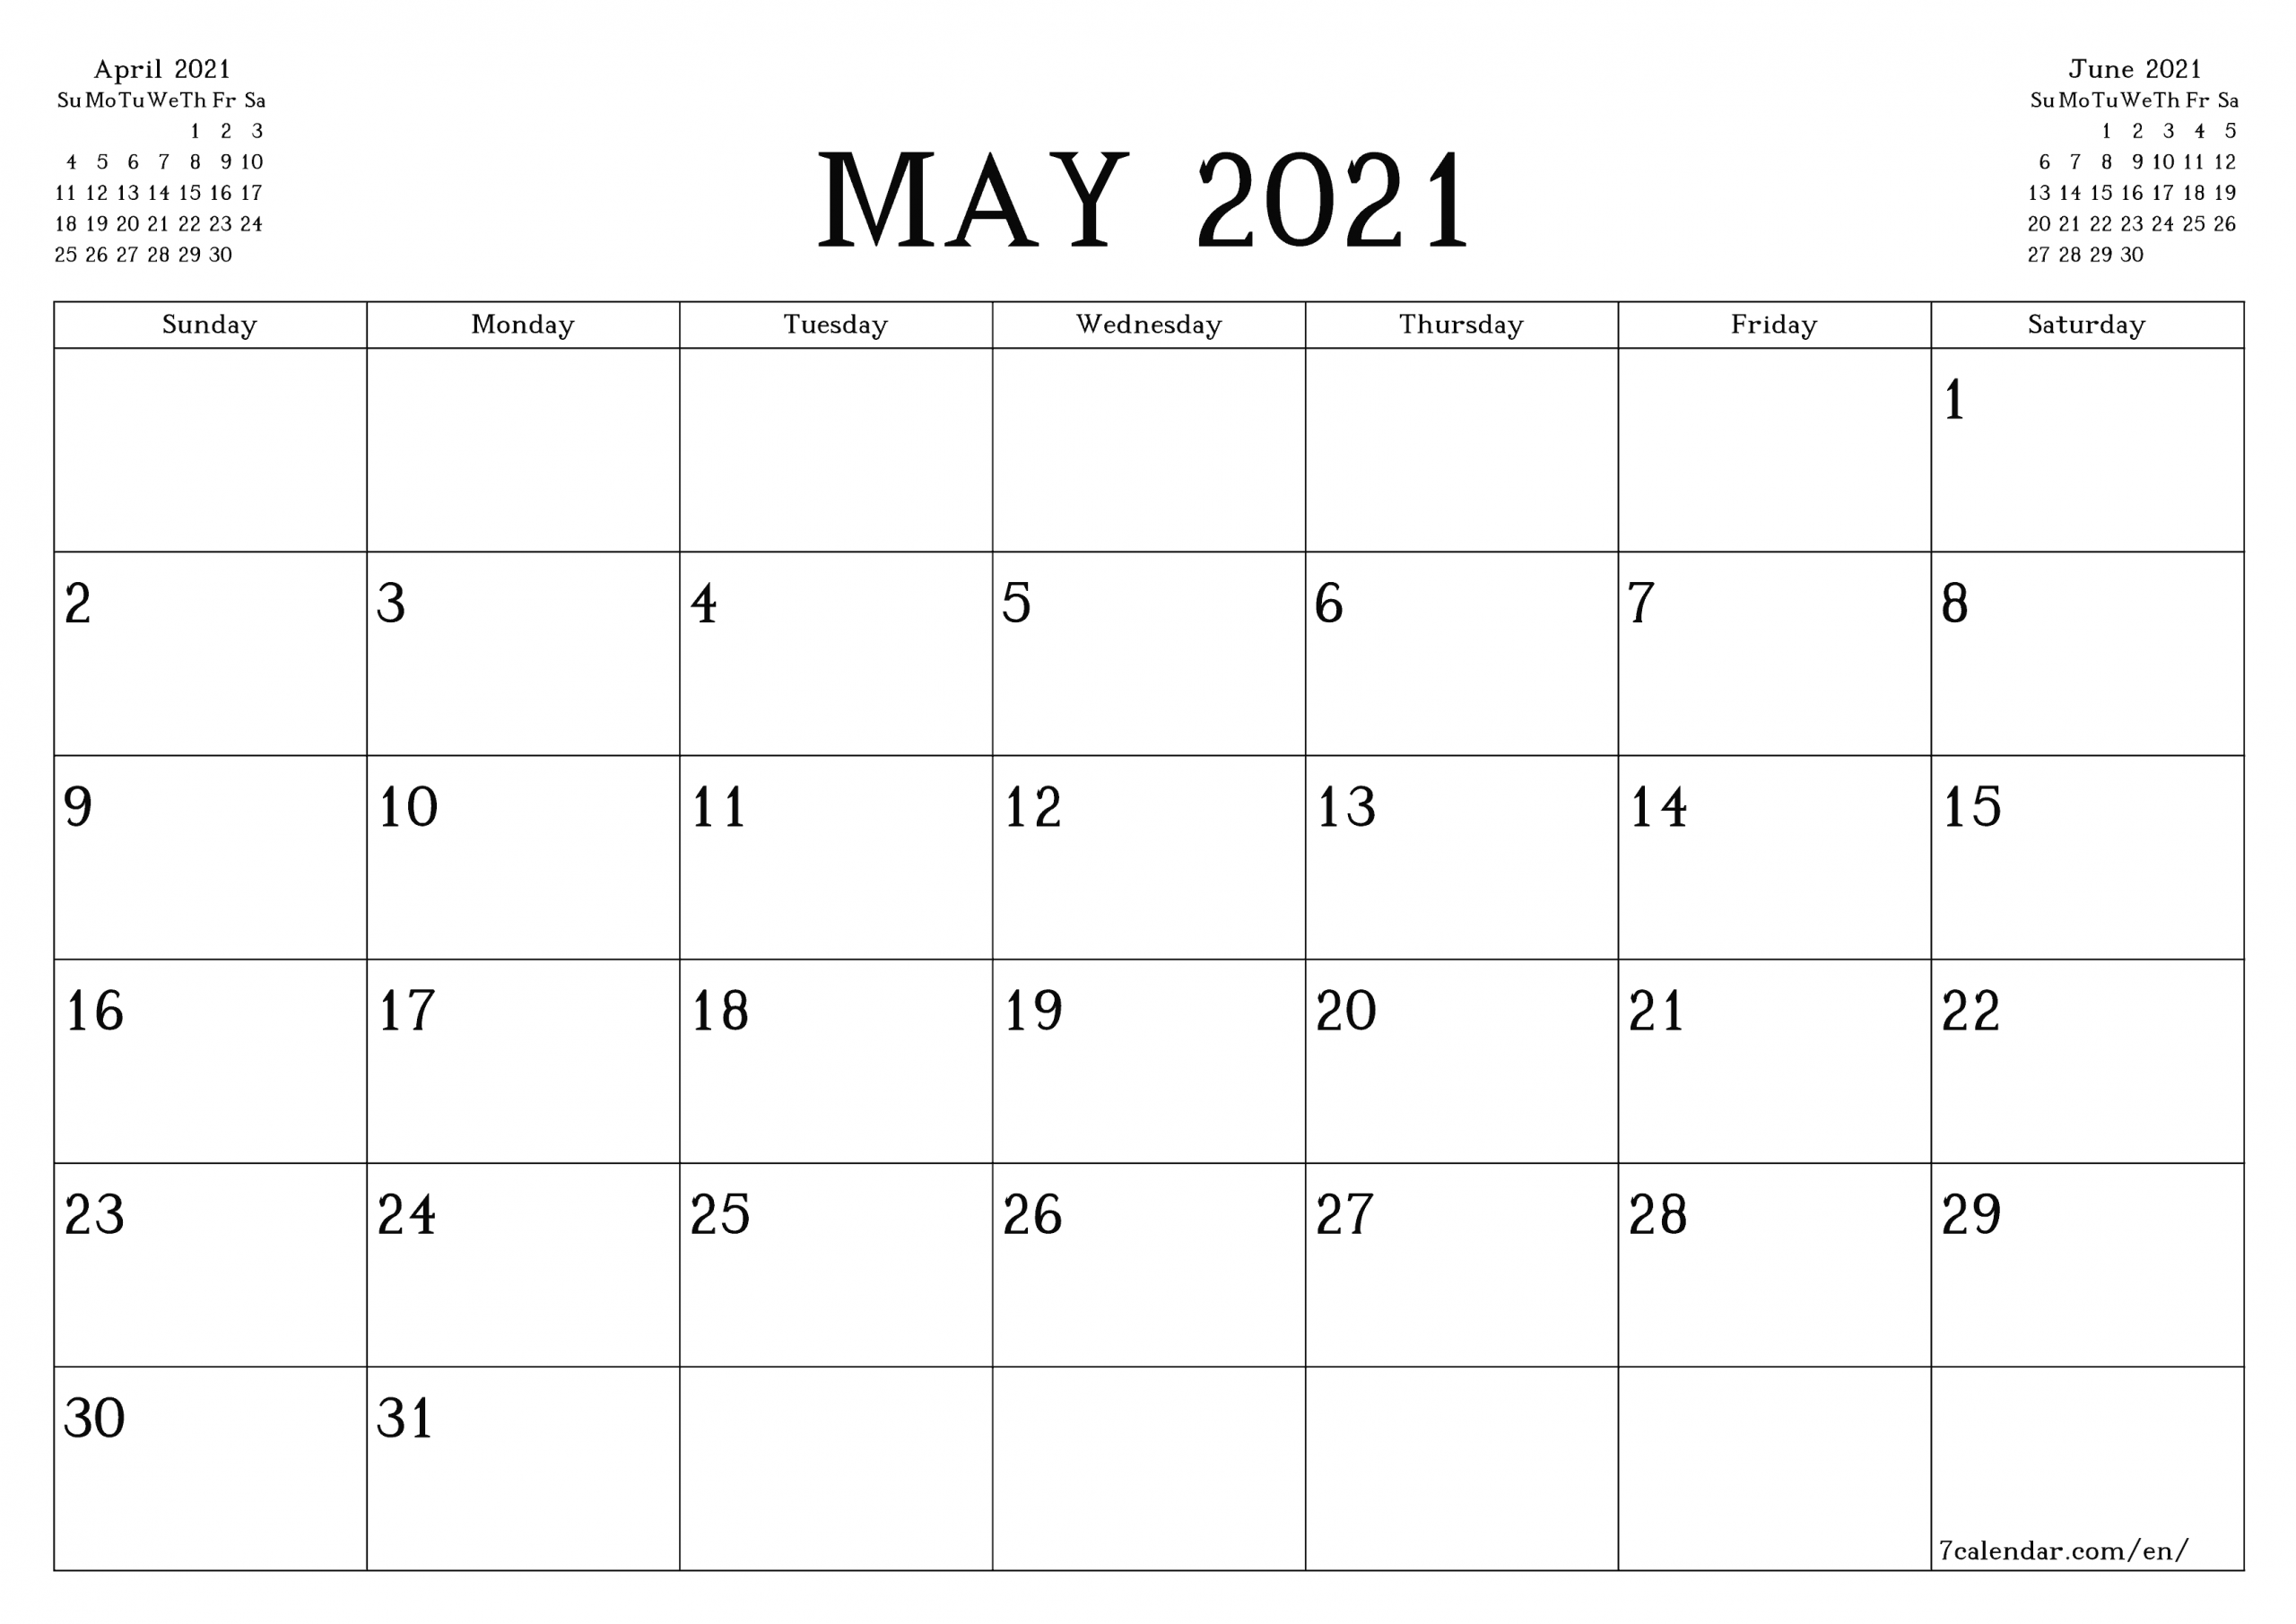 Free Printable Blank Monthly Calendar And Planner For May 2021 - A4, A5 And A3 Pdf And Png